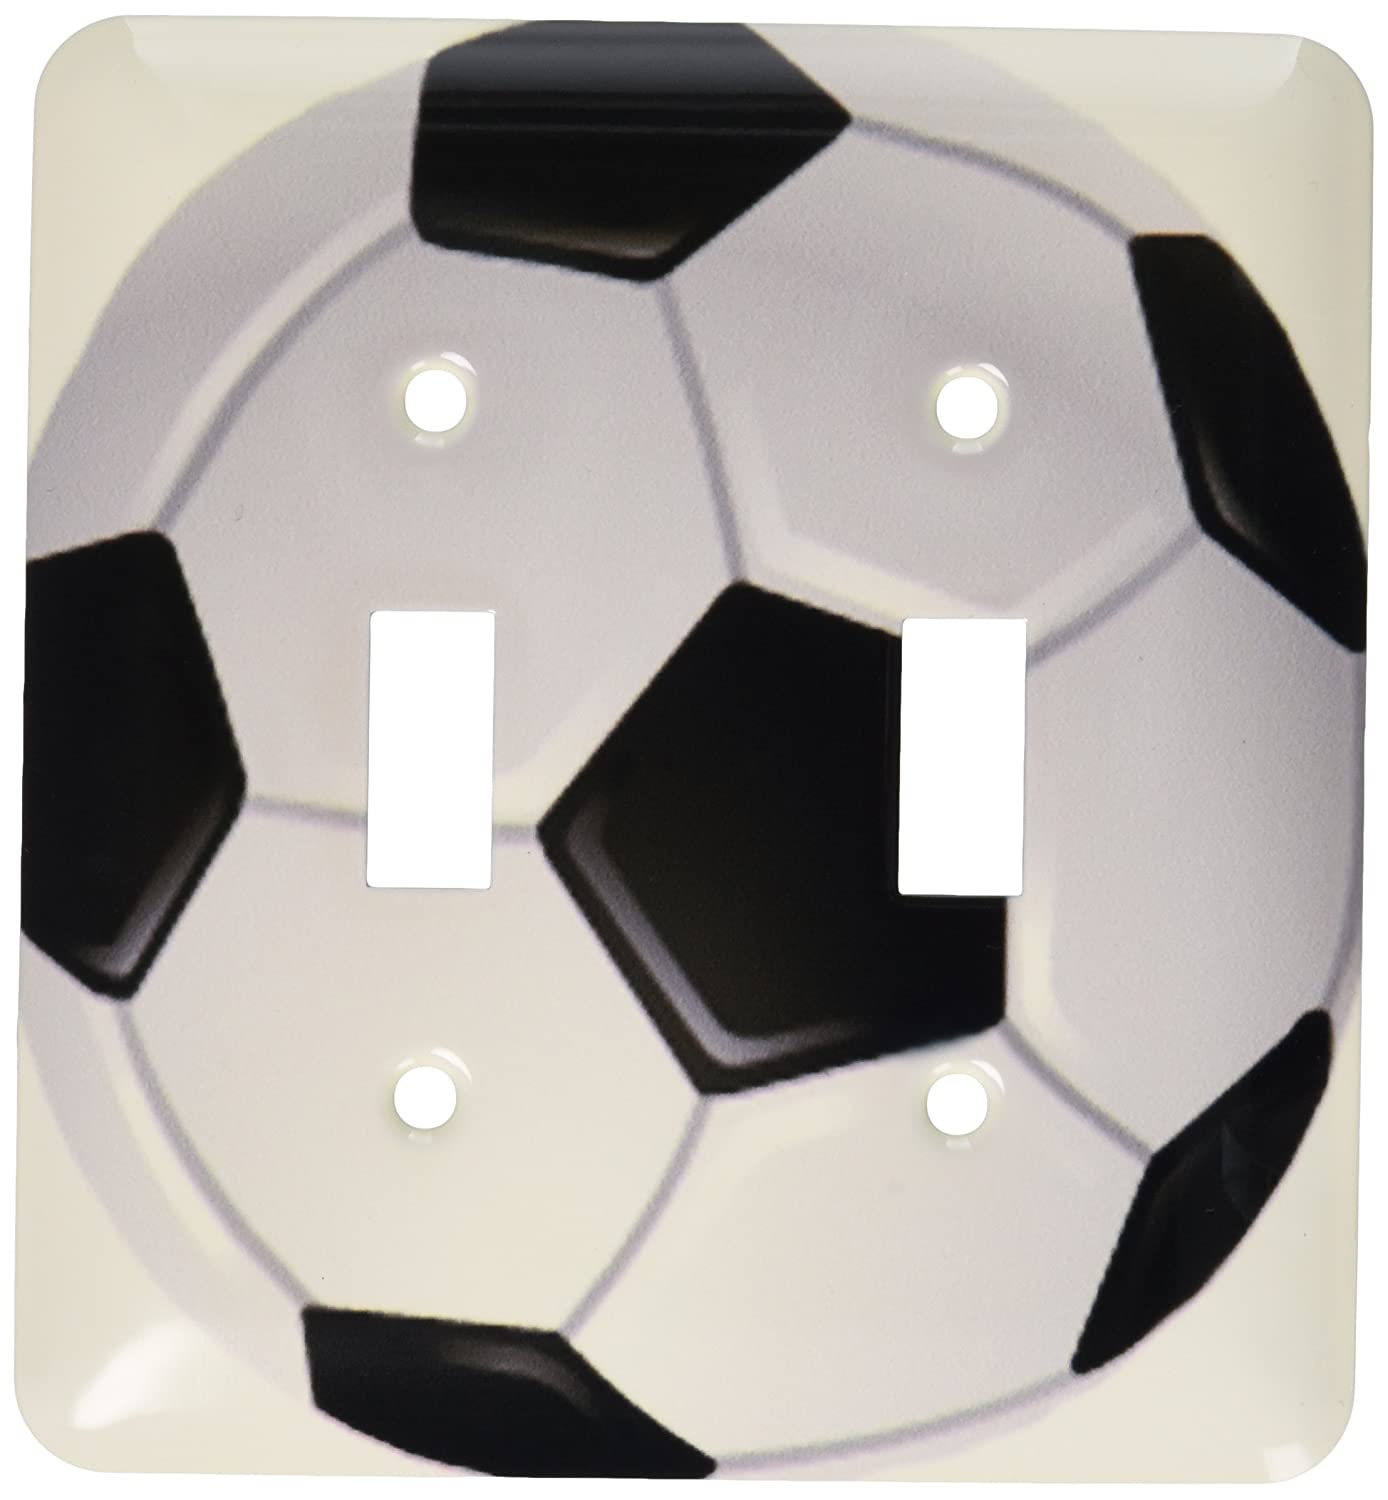 3dRose lsp/_6254/_2 Soccer Ball Double Toggle Switch Multicolored